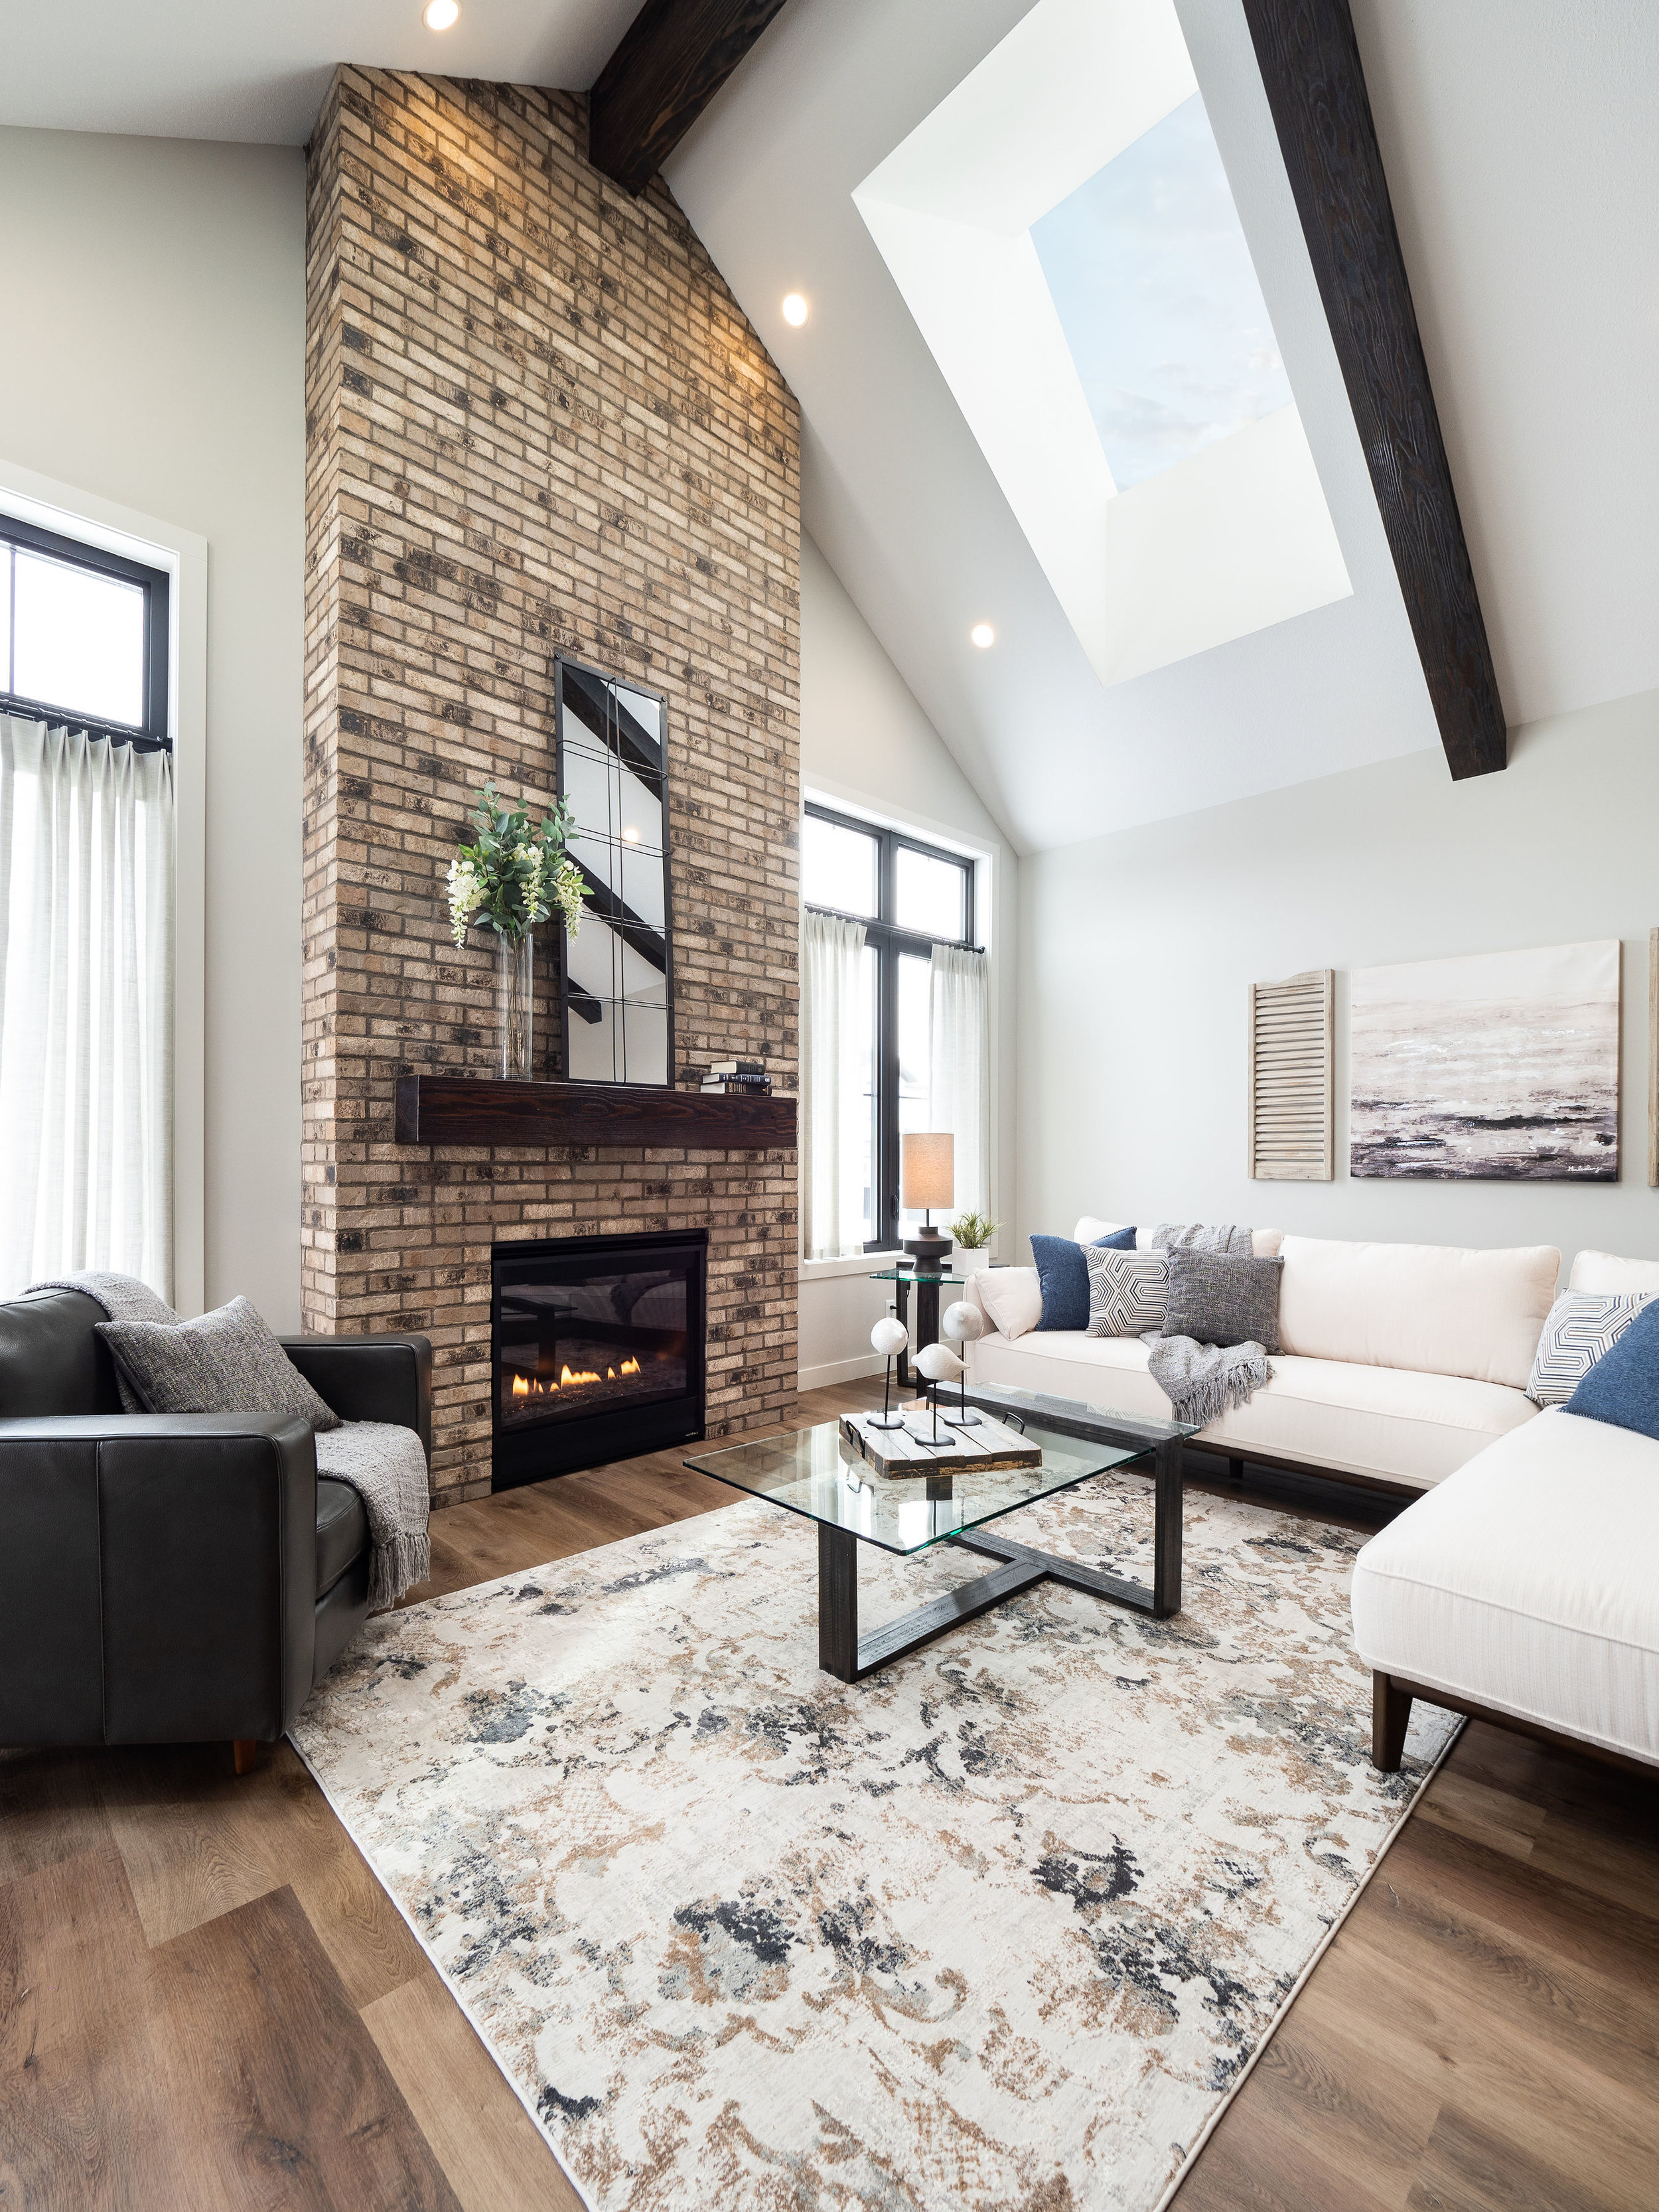 Staring back at you is a floor to ceiling fireplace that seamlessly blends into the vault above. The natural color of brick was the perfect match for the exposed beams which paired with the mantle perfectly.